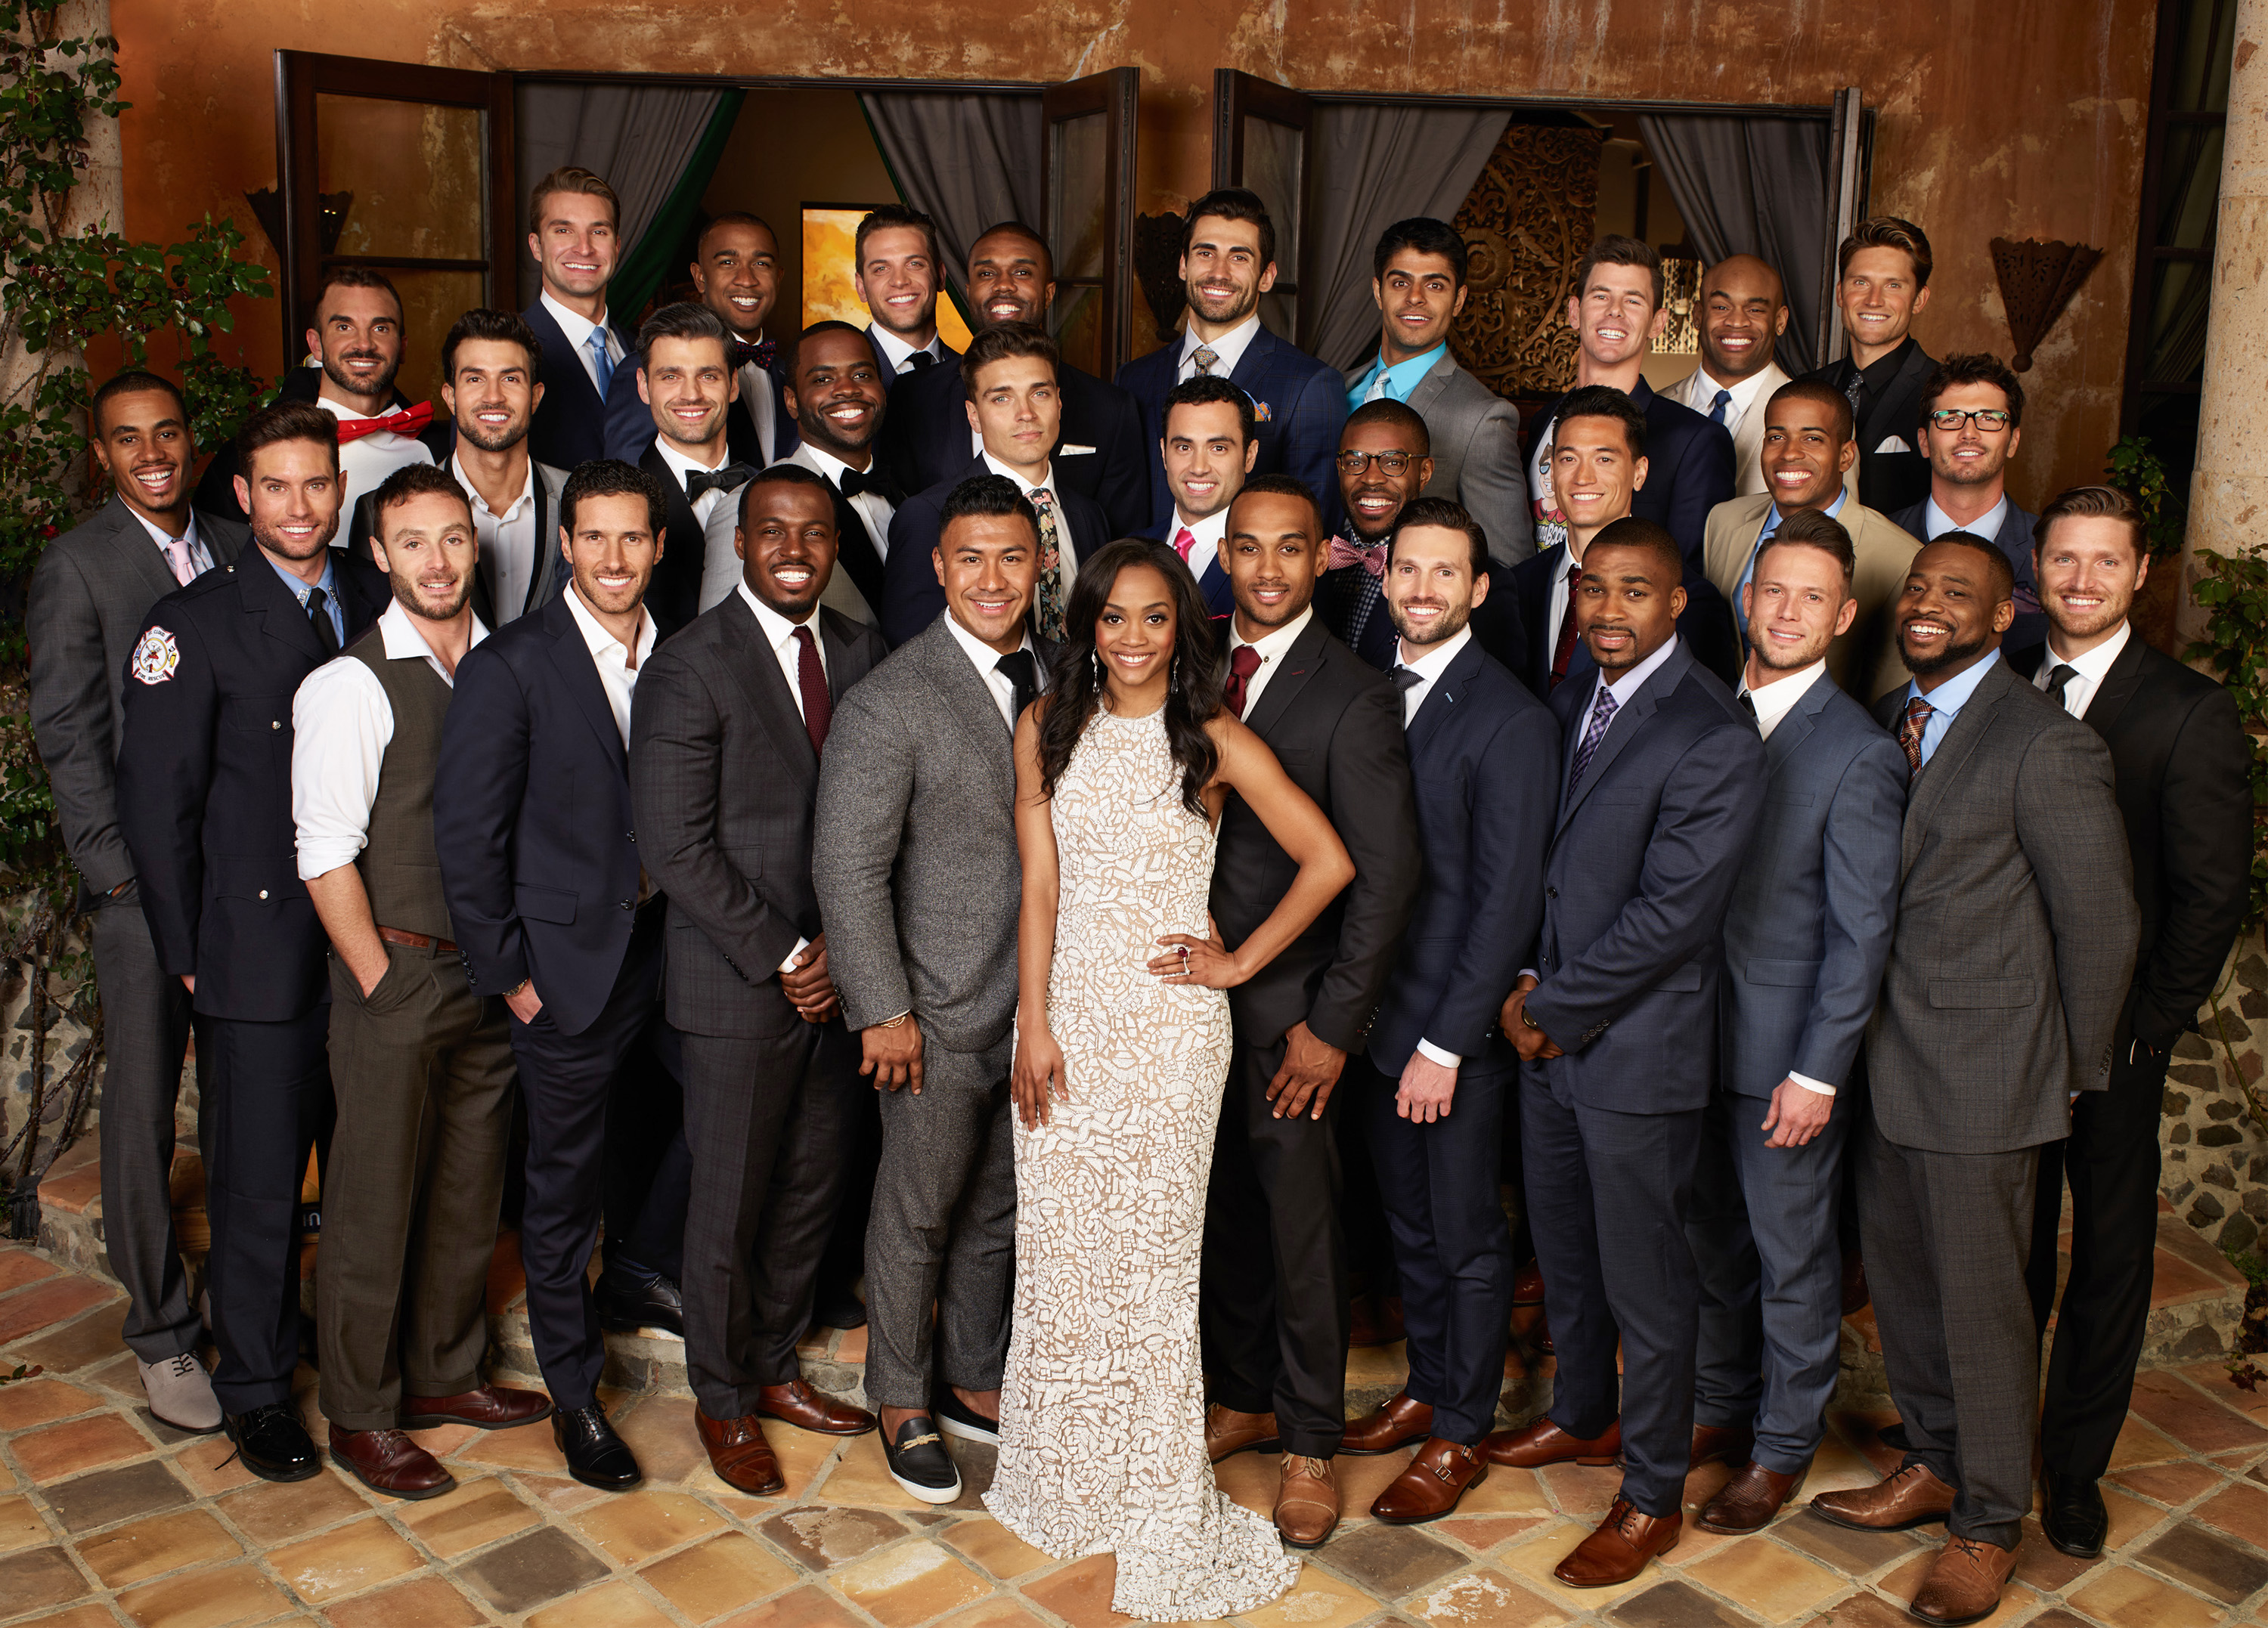 The Wait Is Officially Over To See Bachelorette 2017 Cast And Lucky Men Vying For Sophisticated Lawyers Heart Suitors Of Season